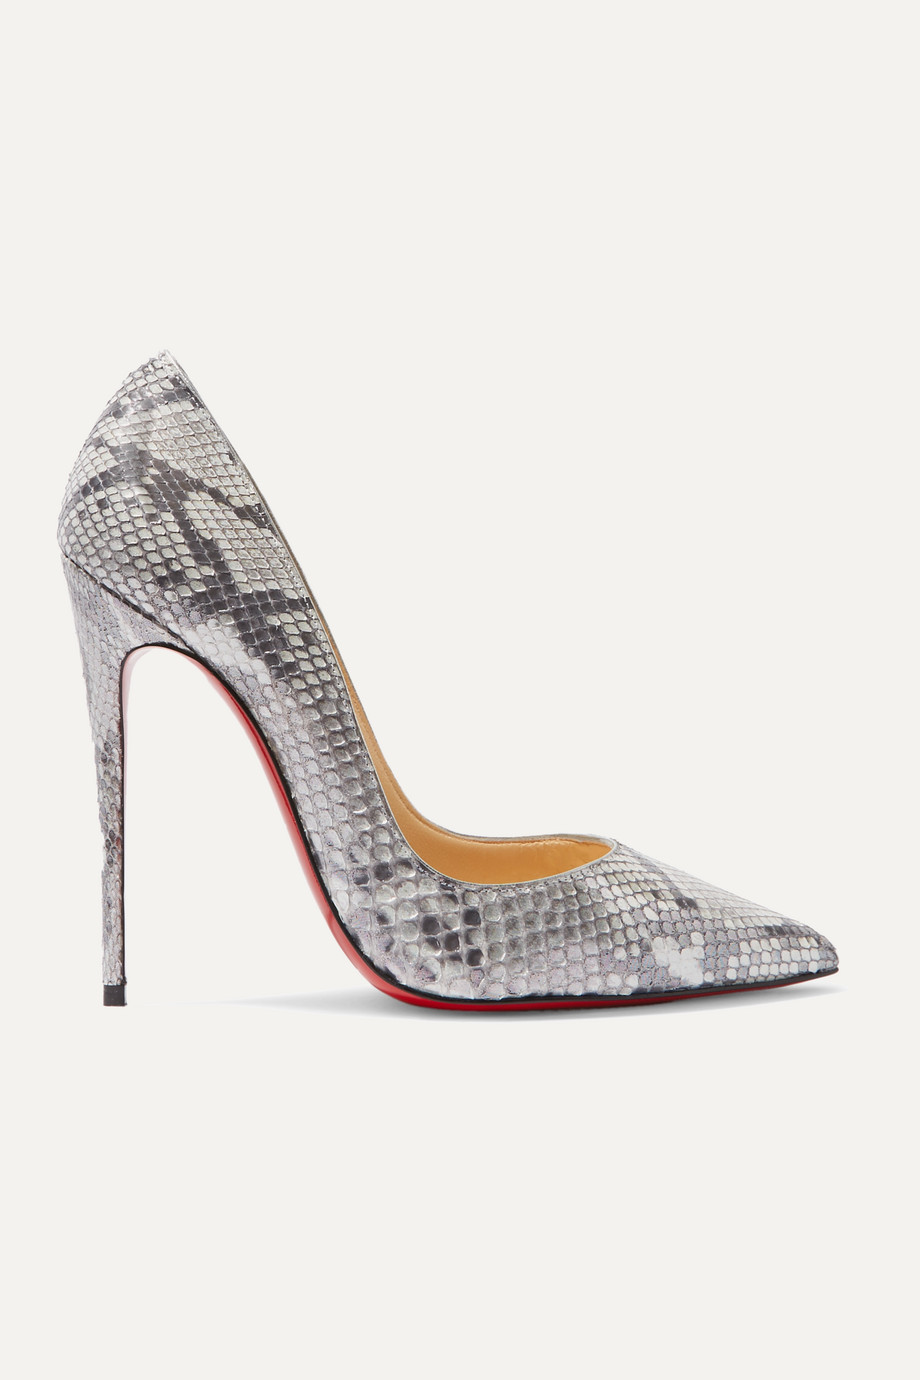 Christian Louboutin Escarpins en python métallisé So Kate 120